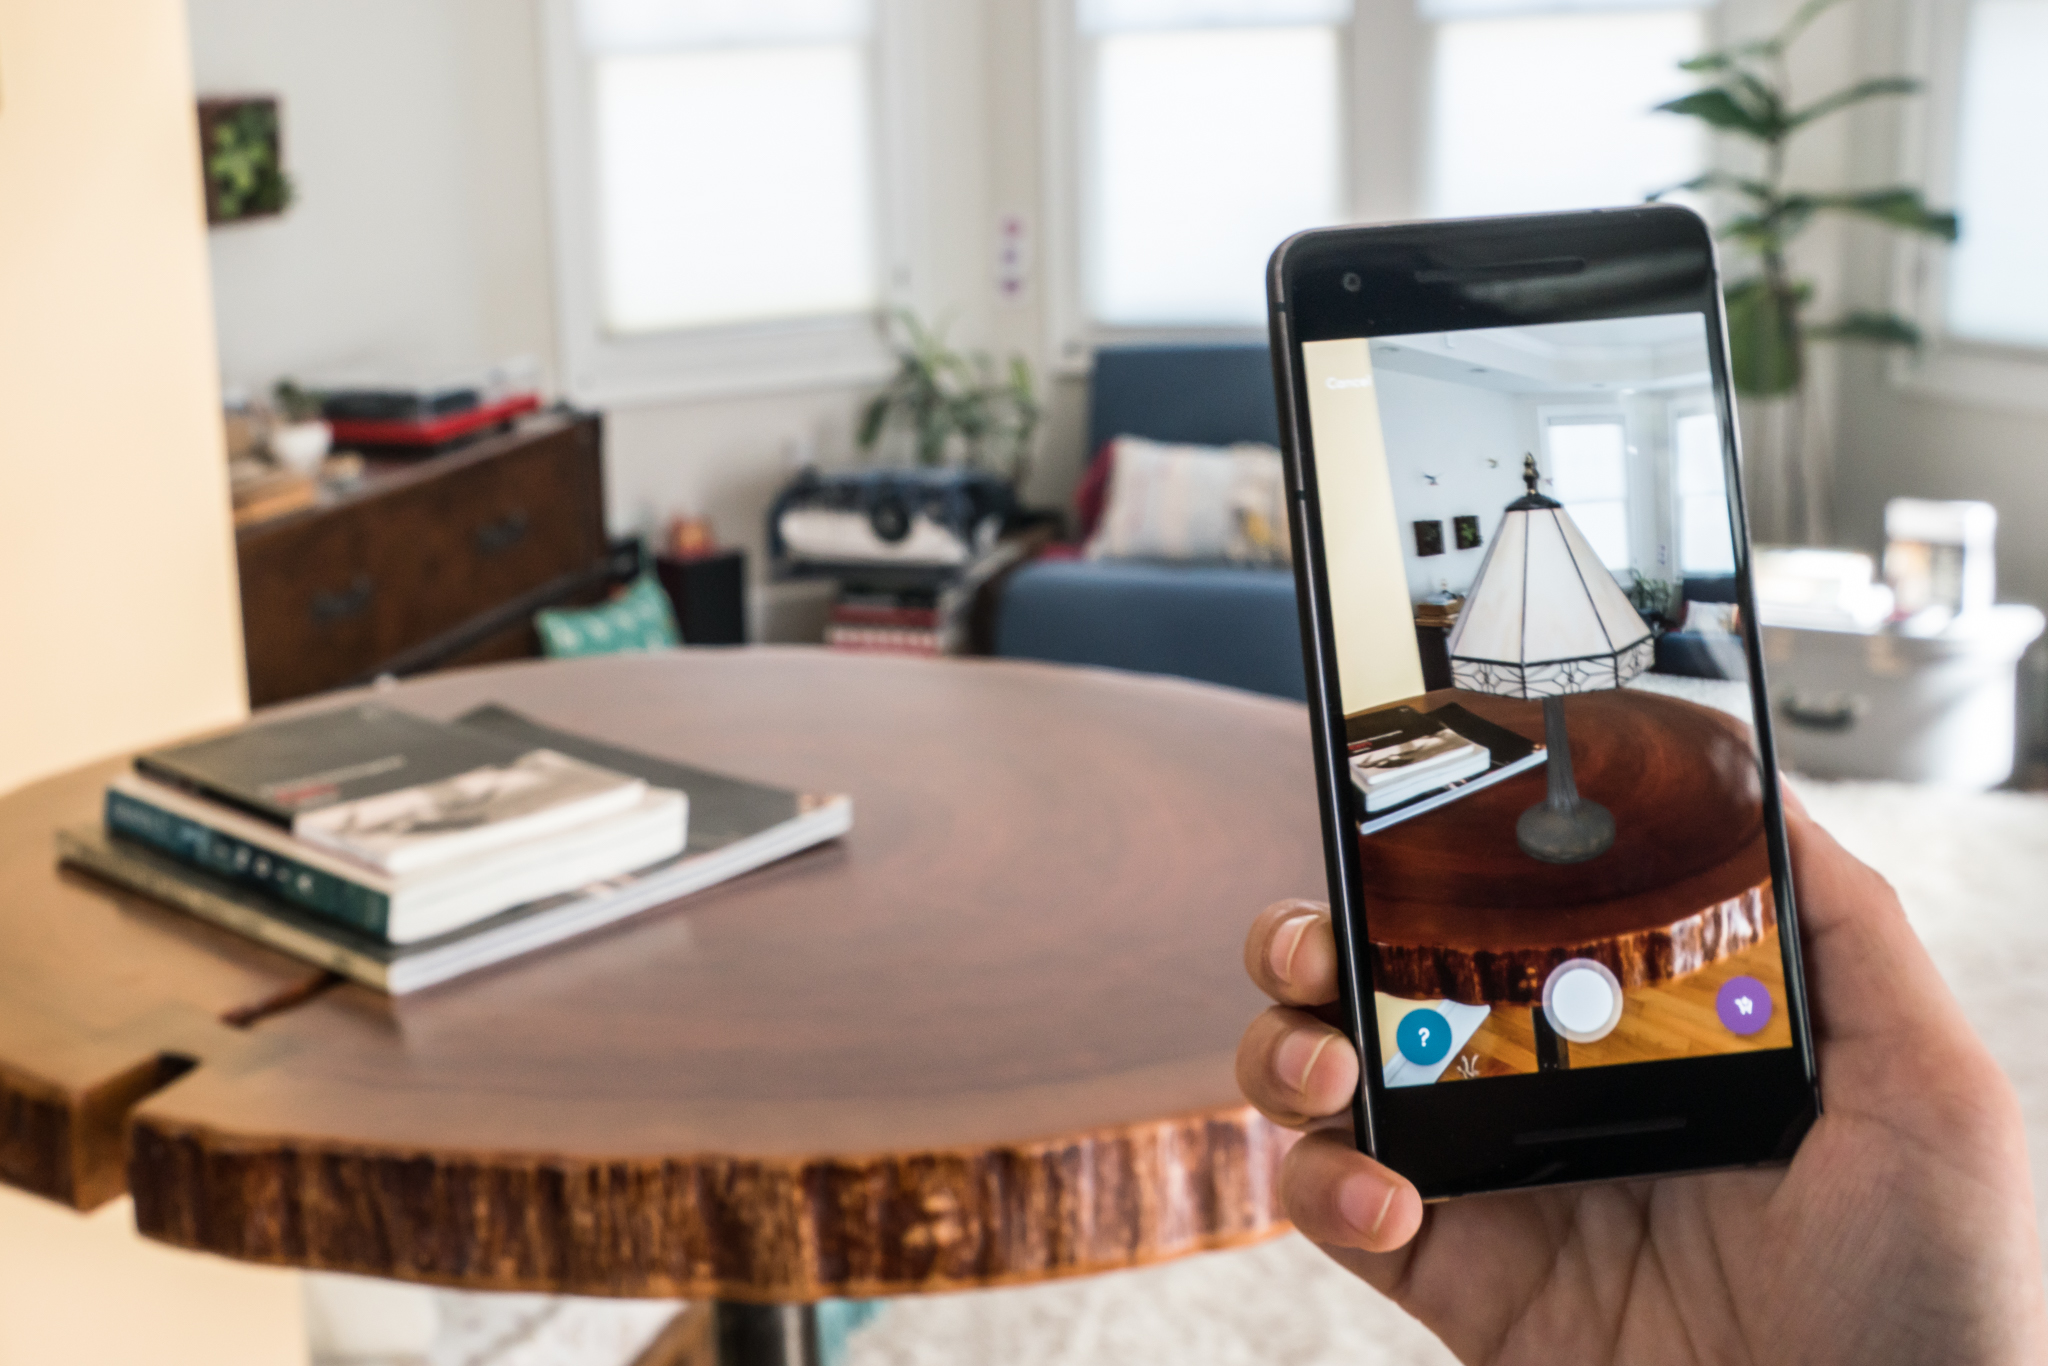 This Time, Online Furniture Retailer Wayfair Is Introducing An Augmented  Reality Feature In Its Mobile App For Android That Will Allow Customers To  ...